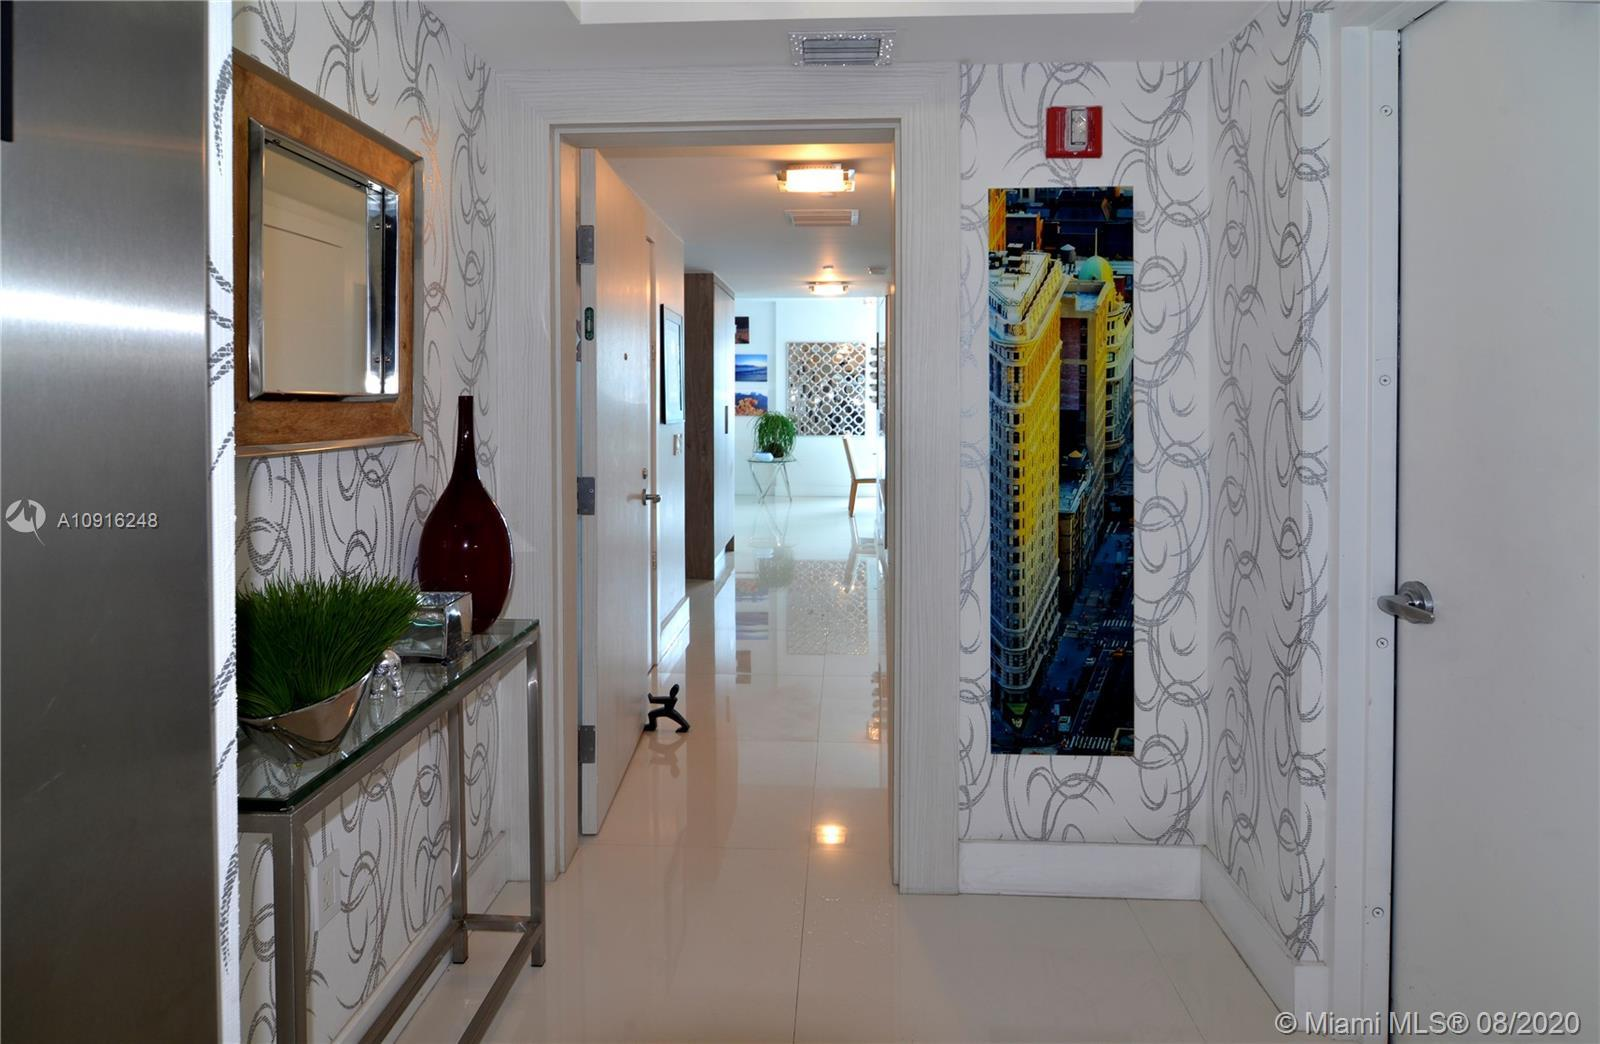 CIELO ON THE BAY is a beautiful boutique building, only 35 units located on the beautiful Miami Bay.